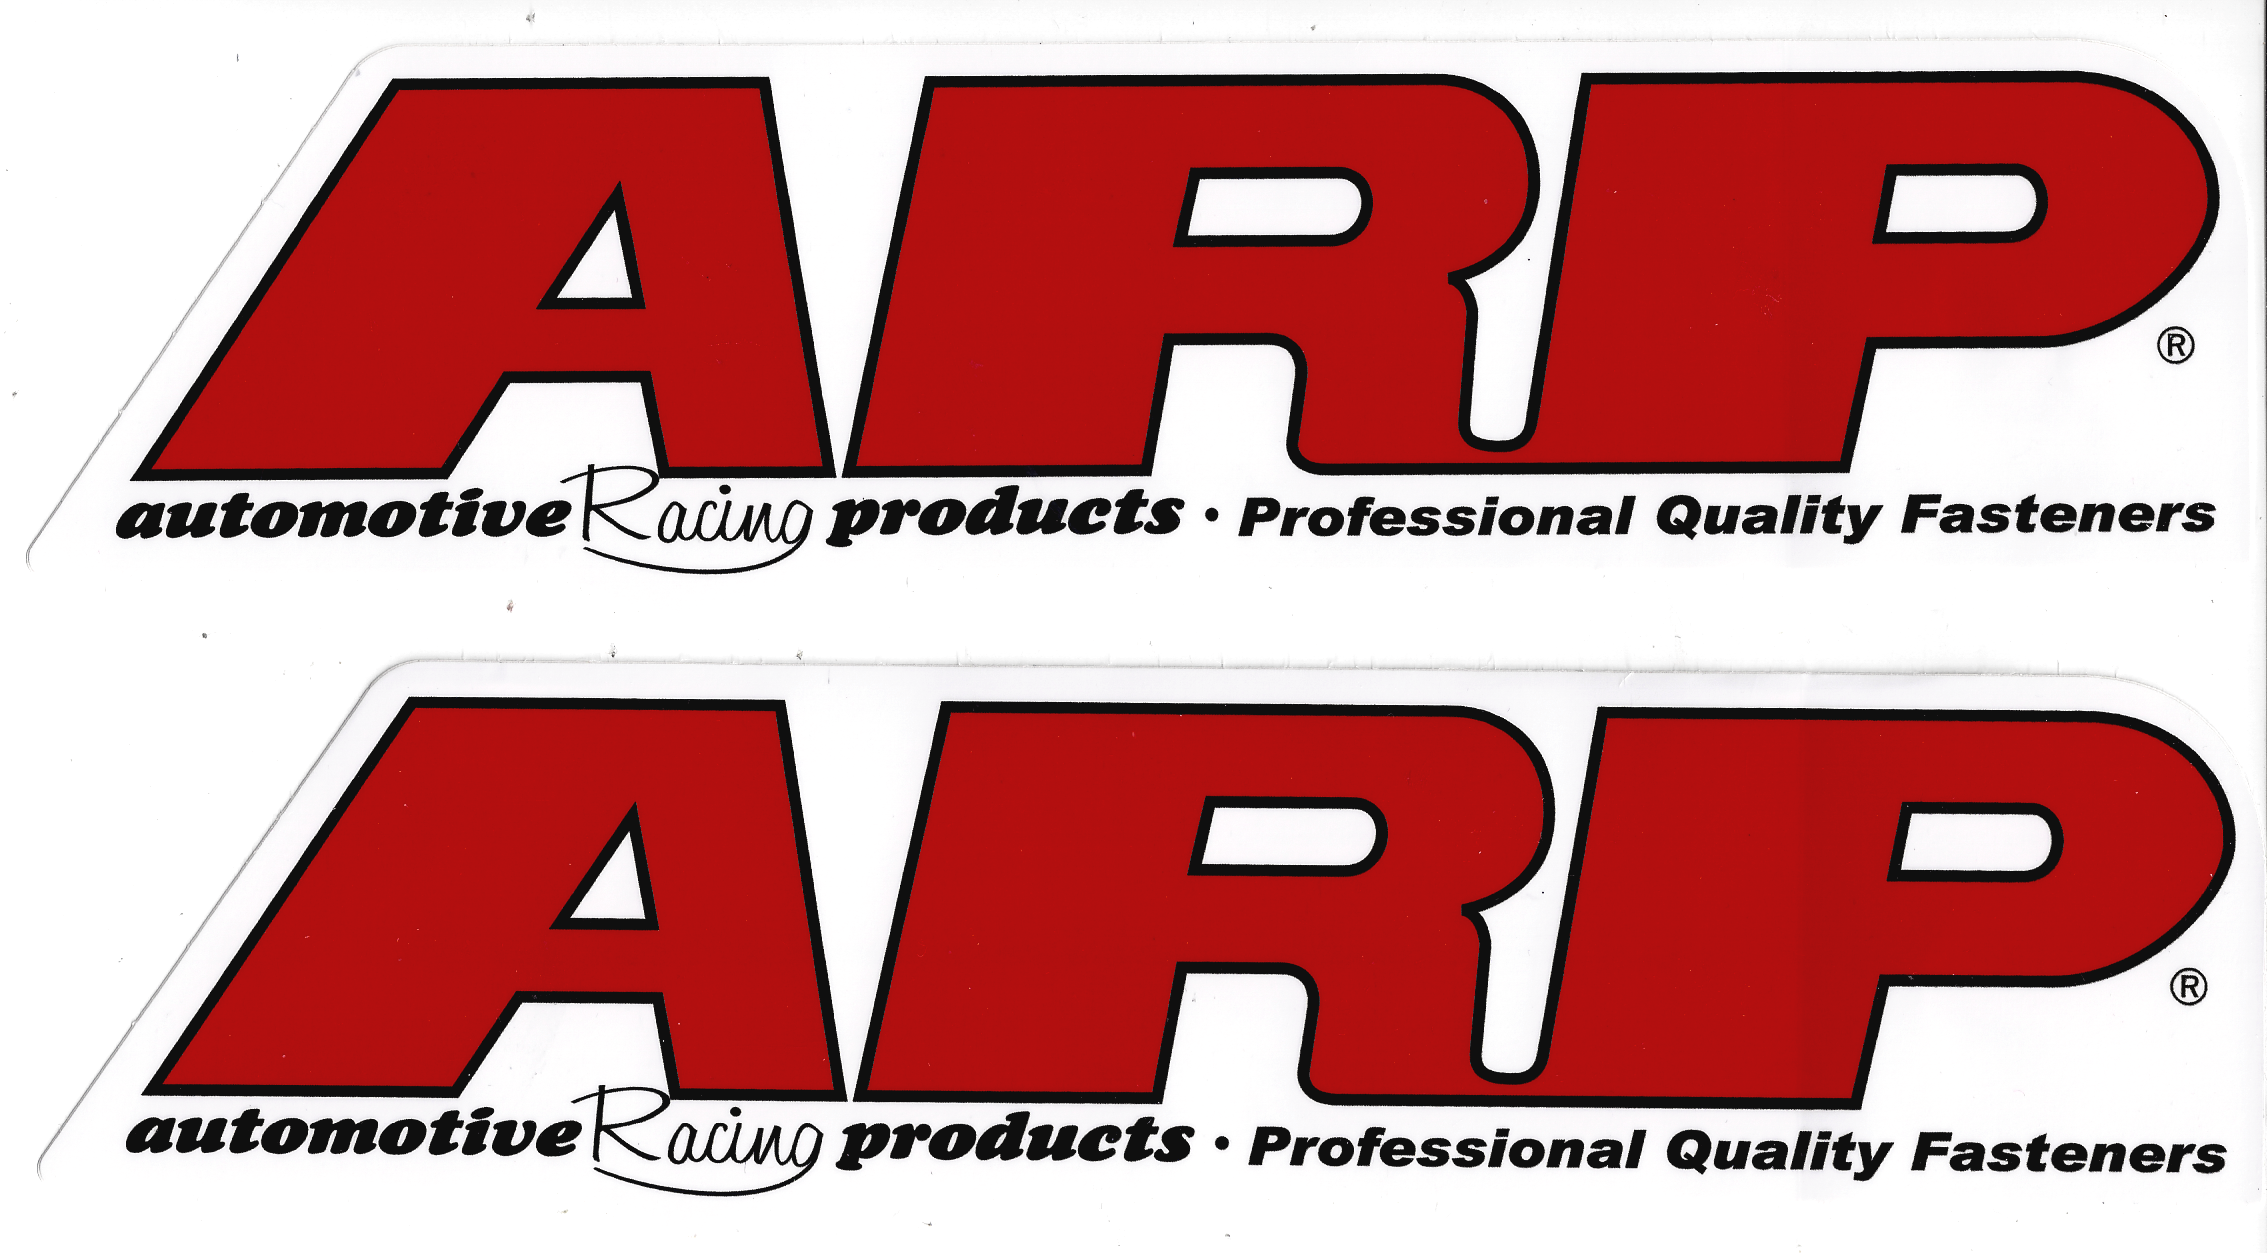 ARP Racing Stickers Decal  Inches Long CrashDaddy Racing Decals - Racing decals